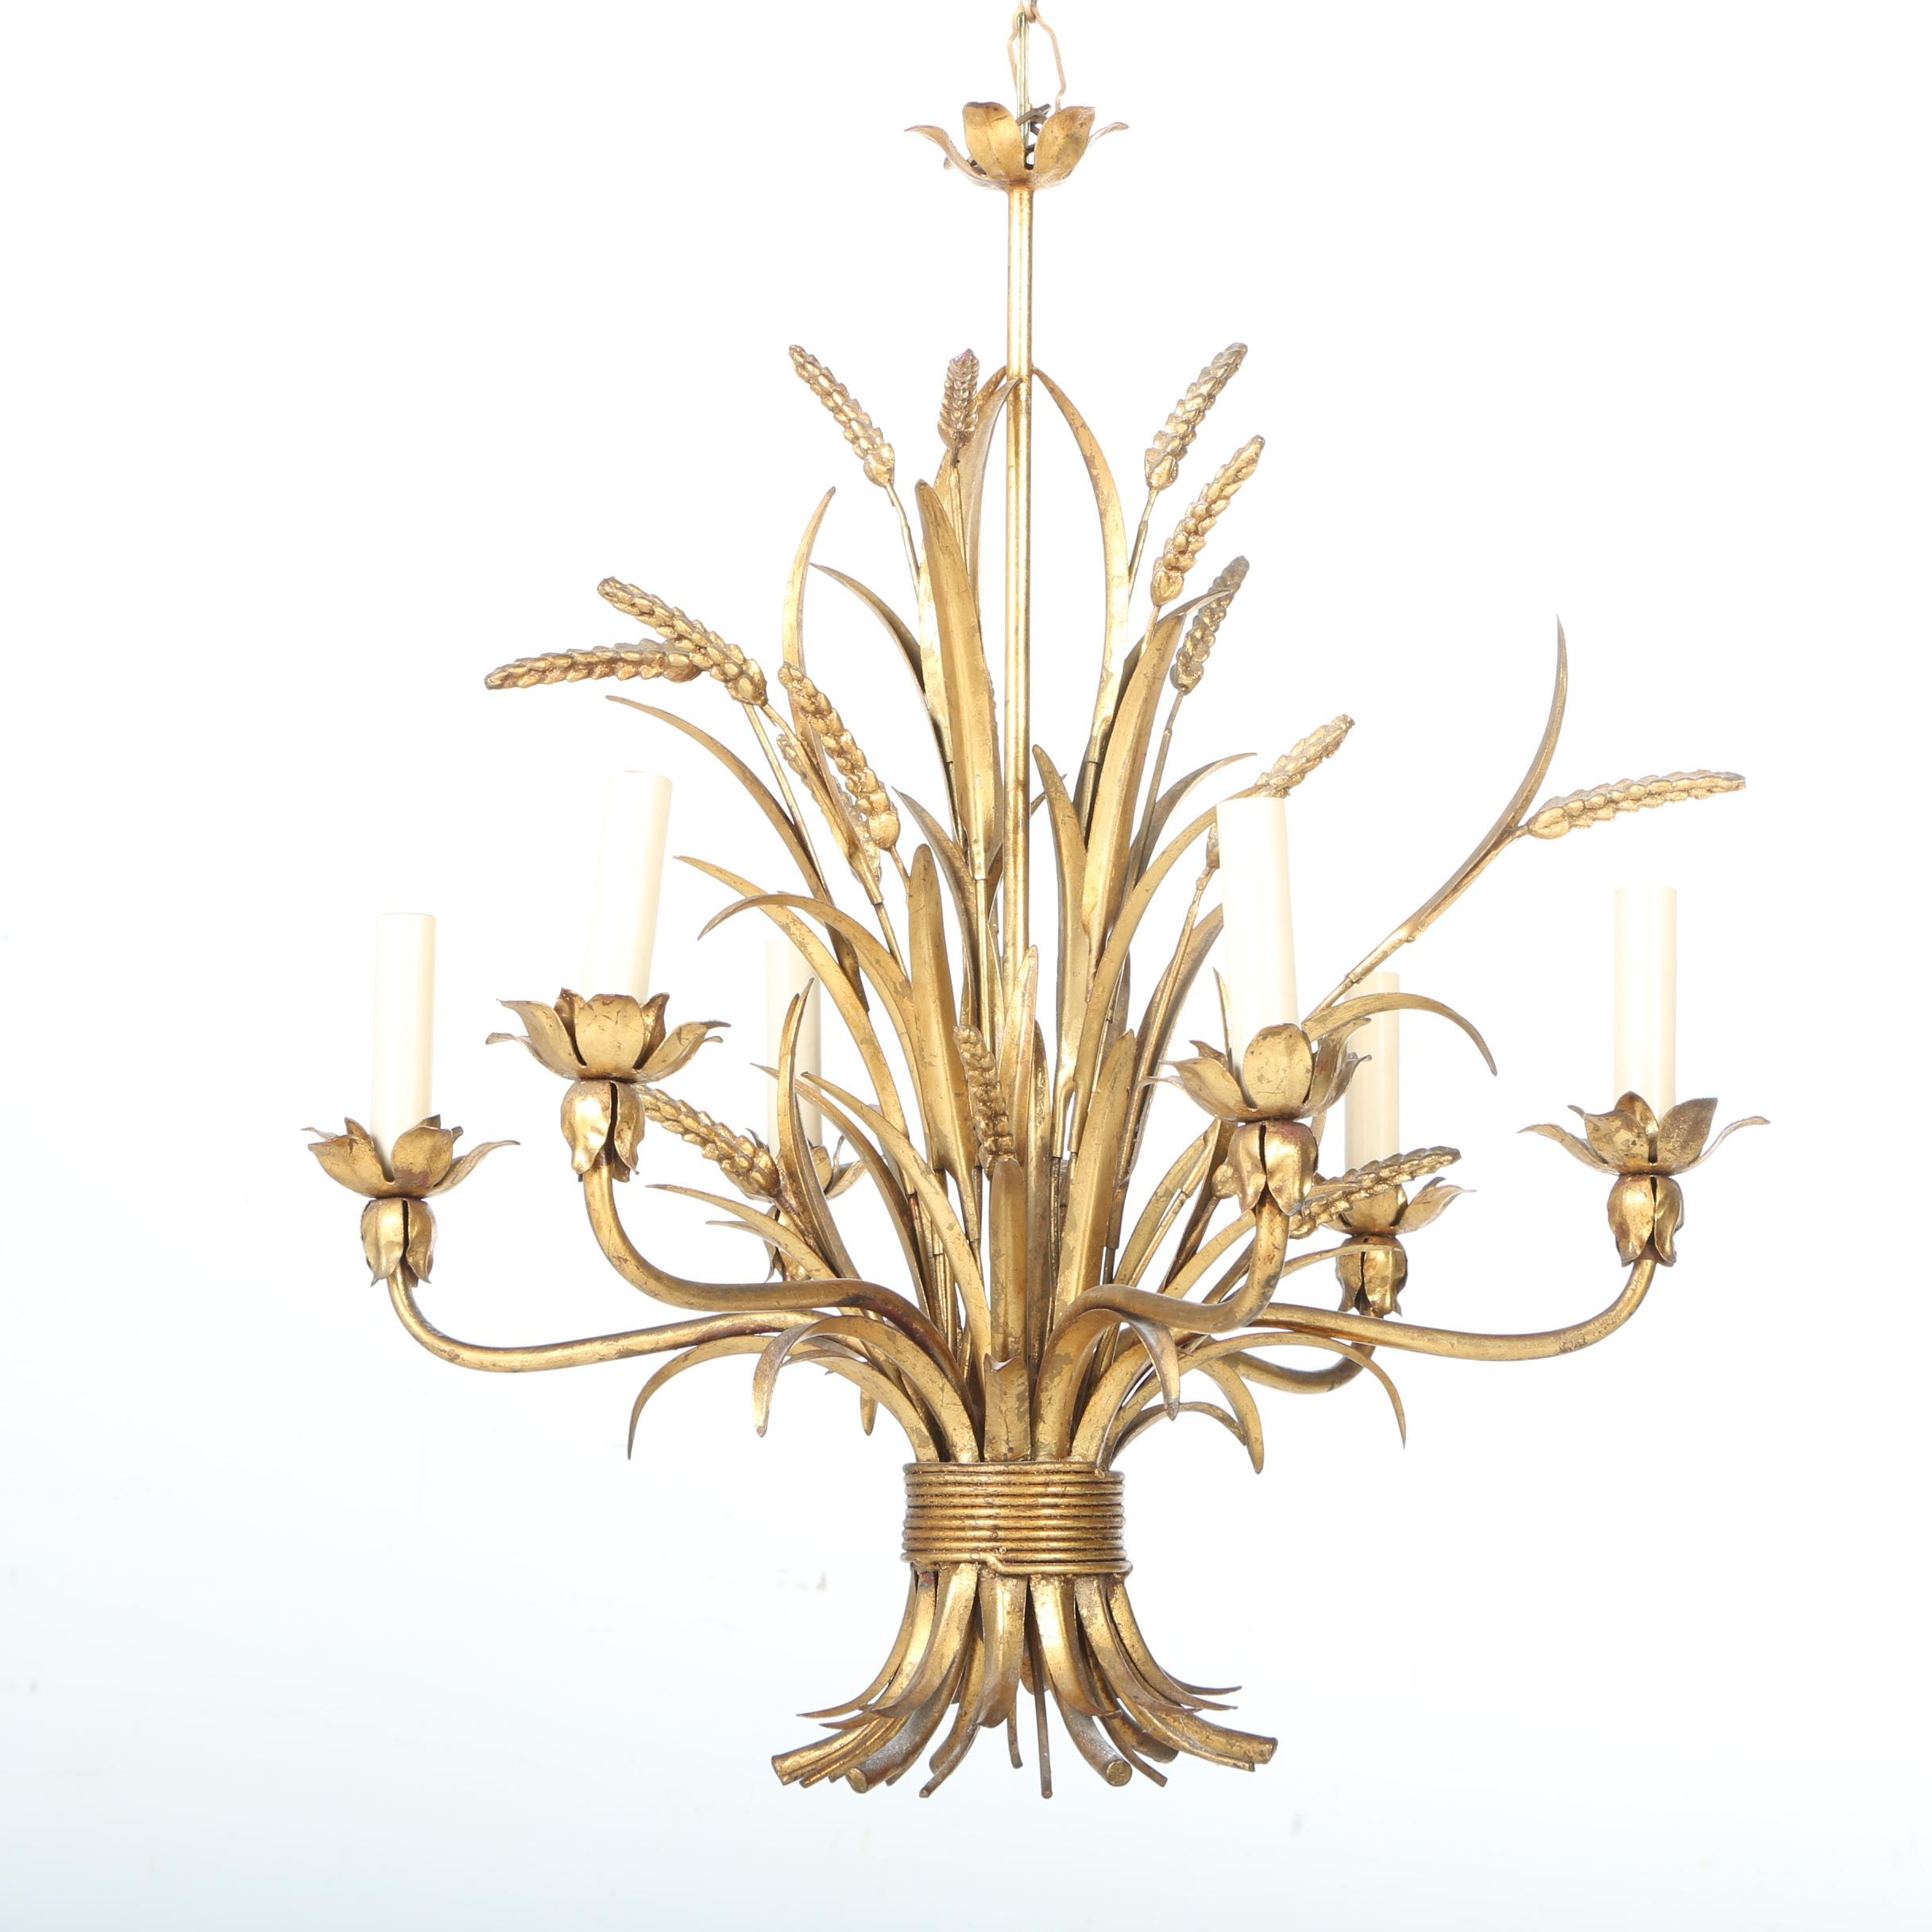 Gold Tone Decorative Chandelier